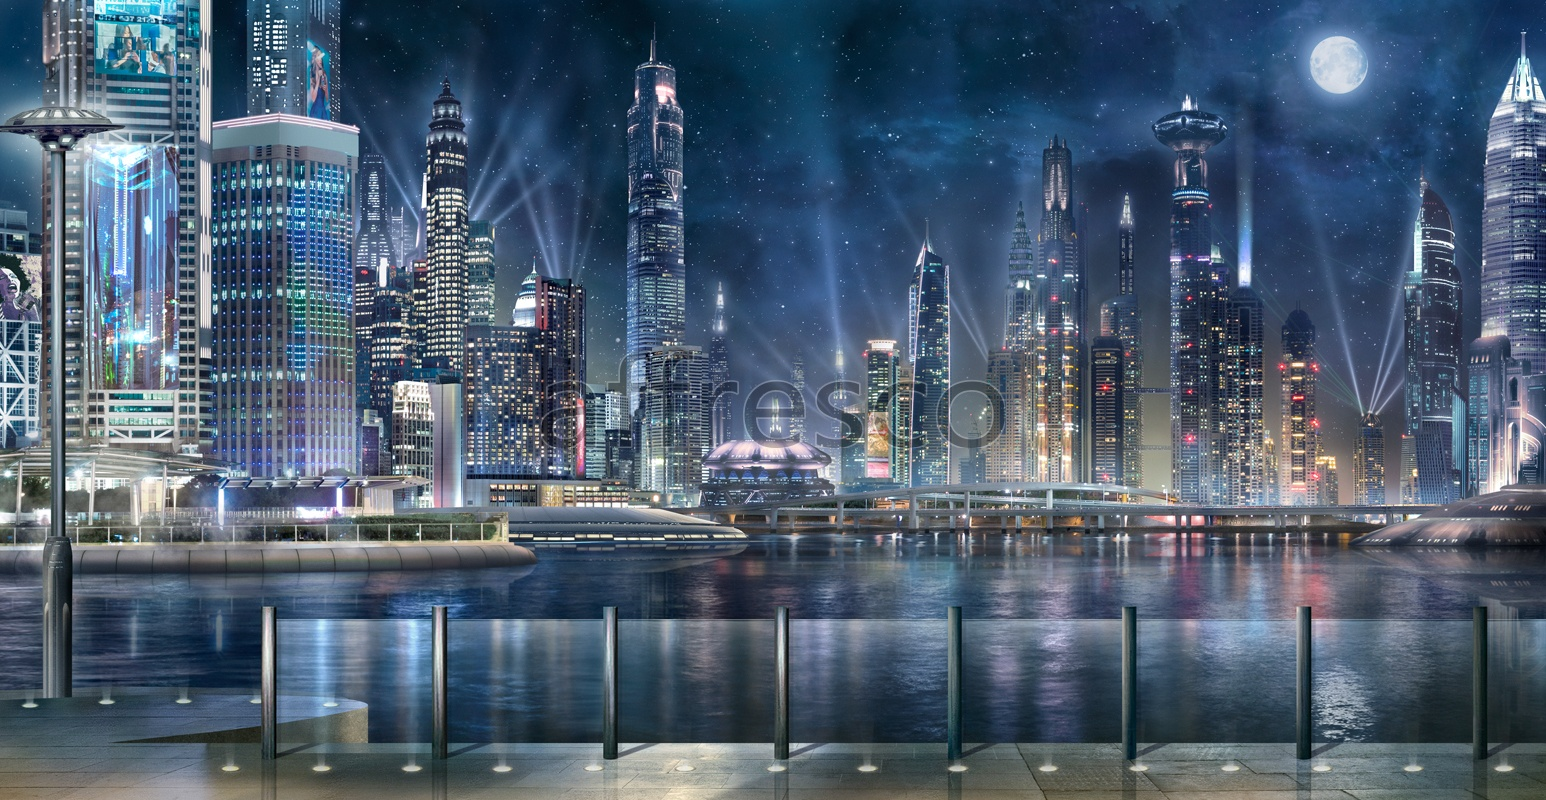 6501 | The best landscapes | Panorama of nightly skyscrapers | Affresco Factory